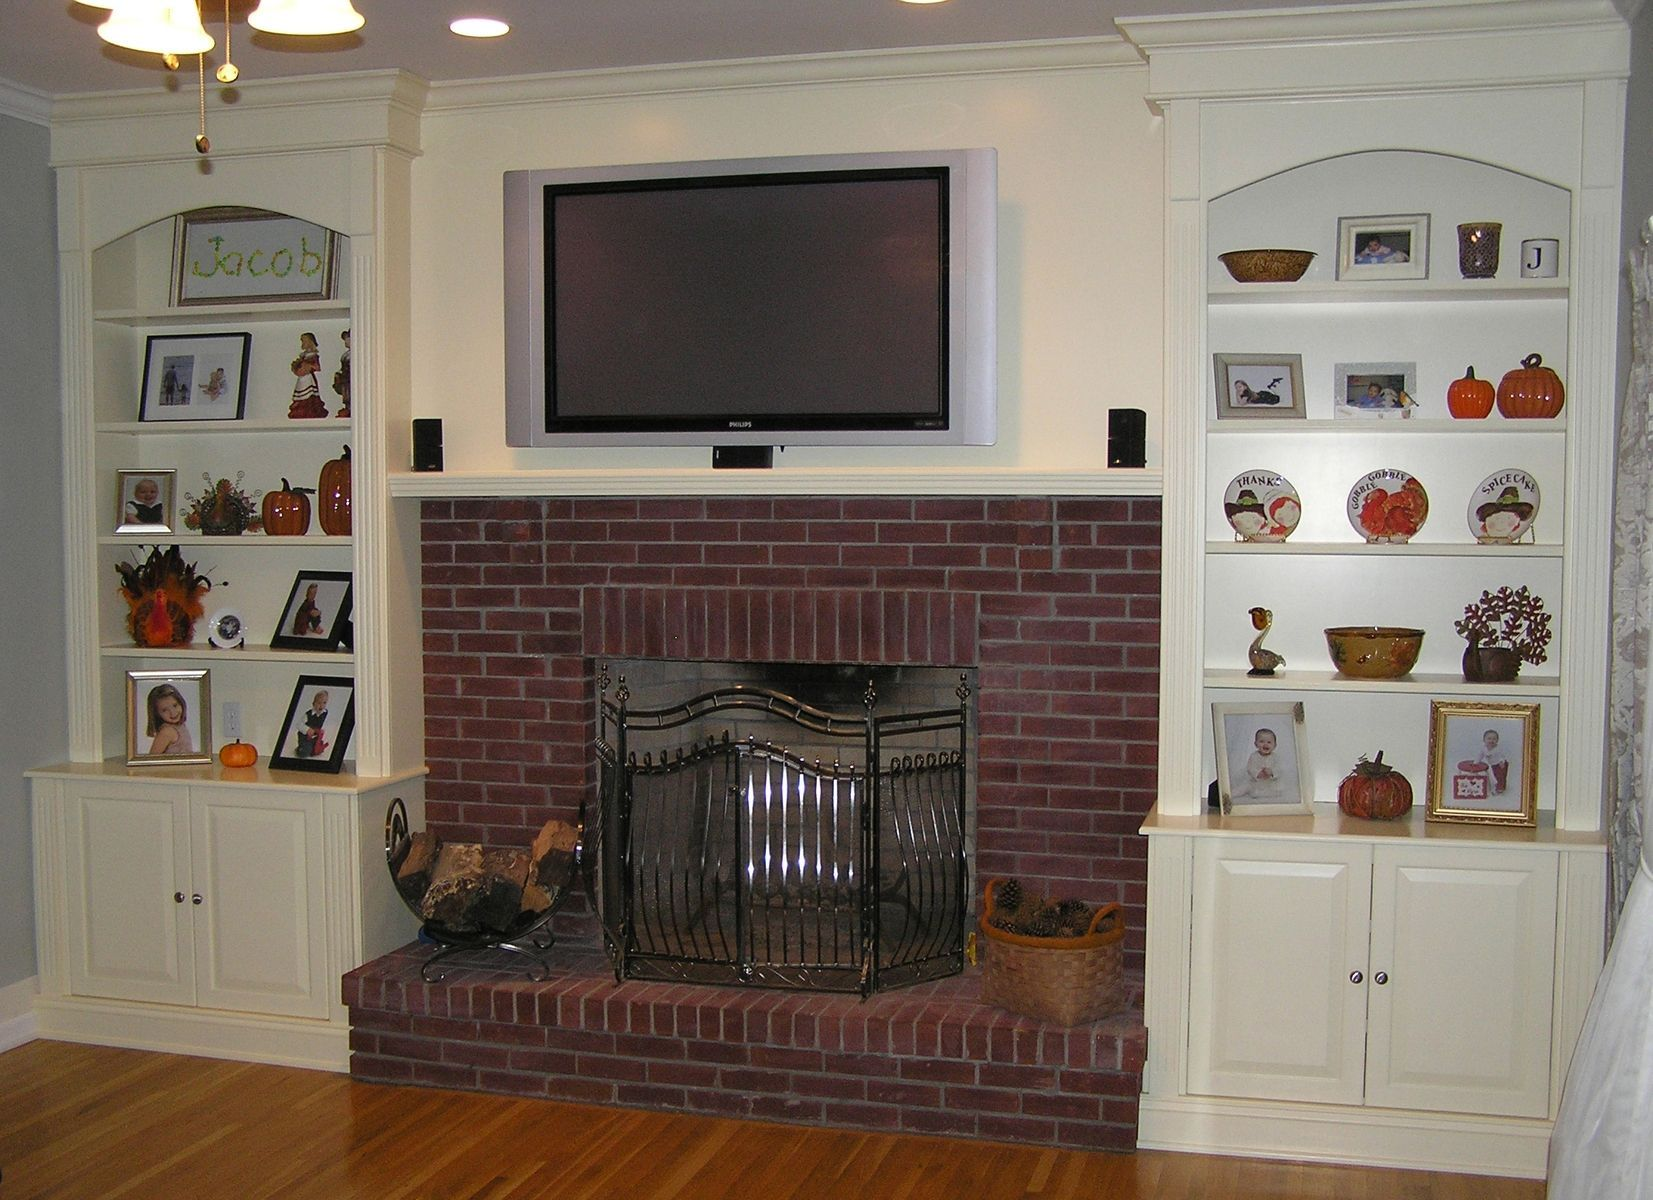 Living Room With Fireplace And Helves fireplace with bookshelves on each side | fireplace bookcases